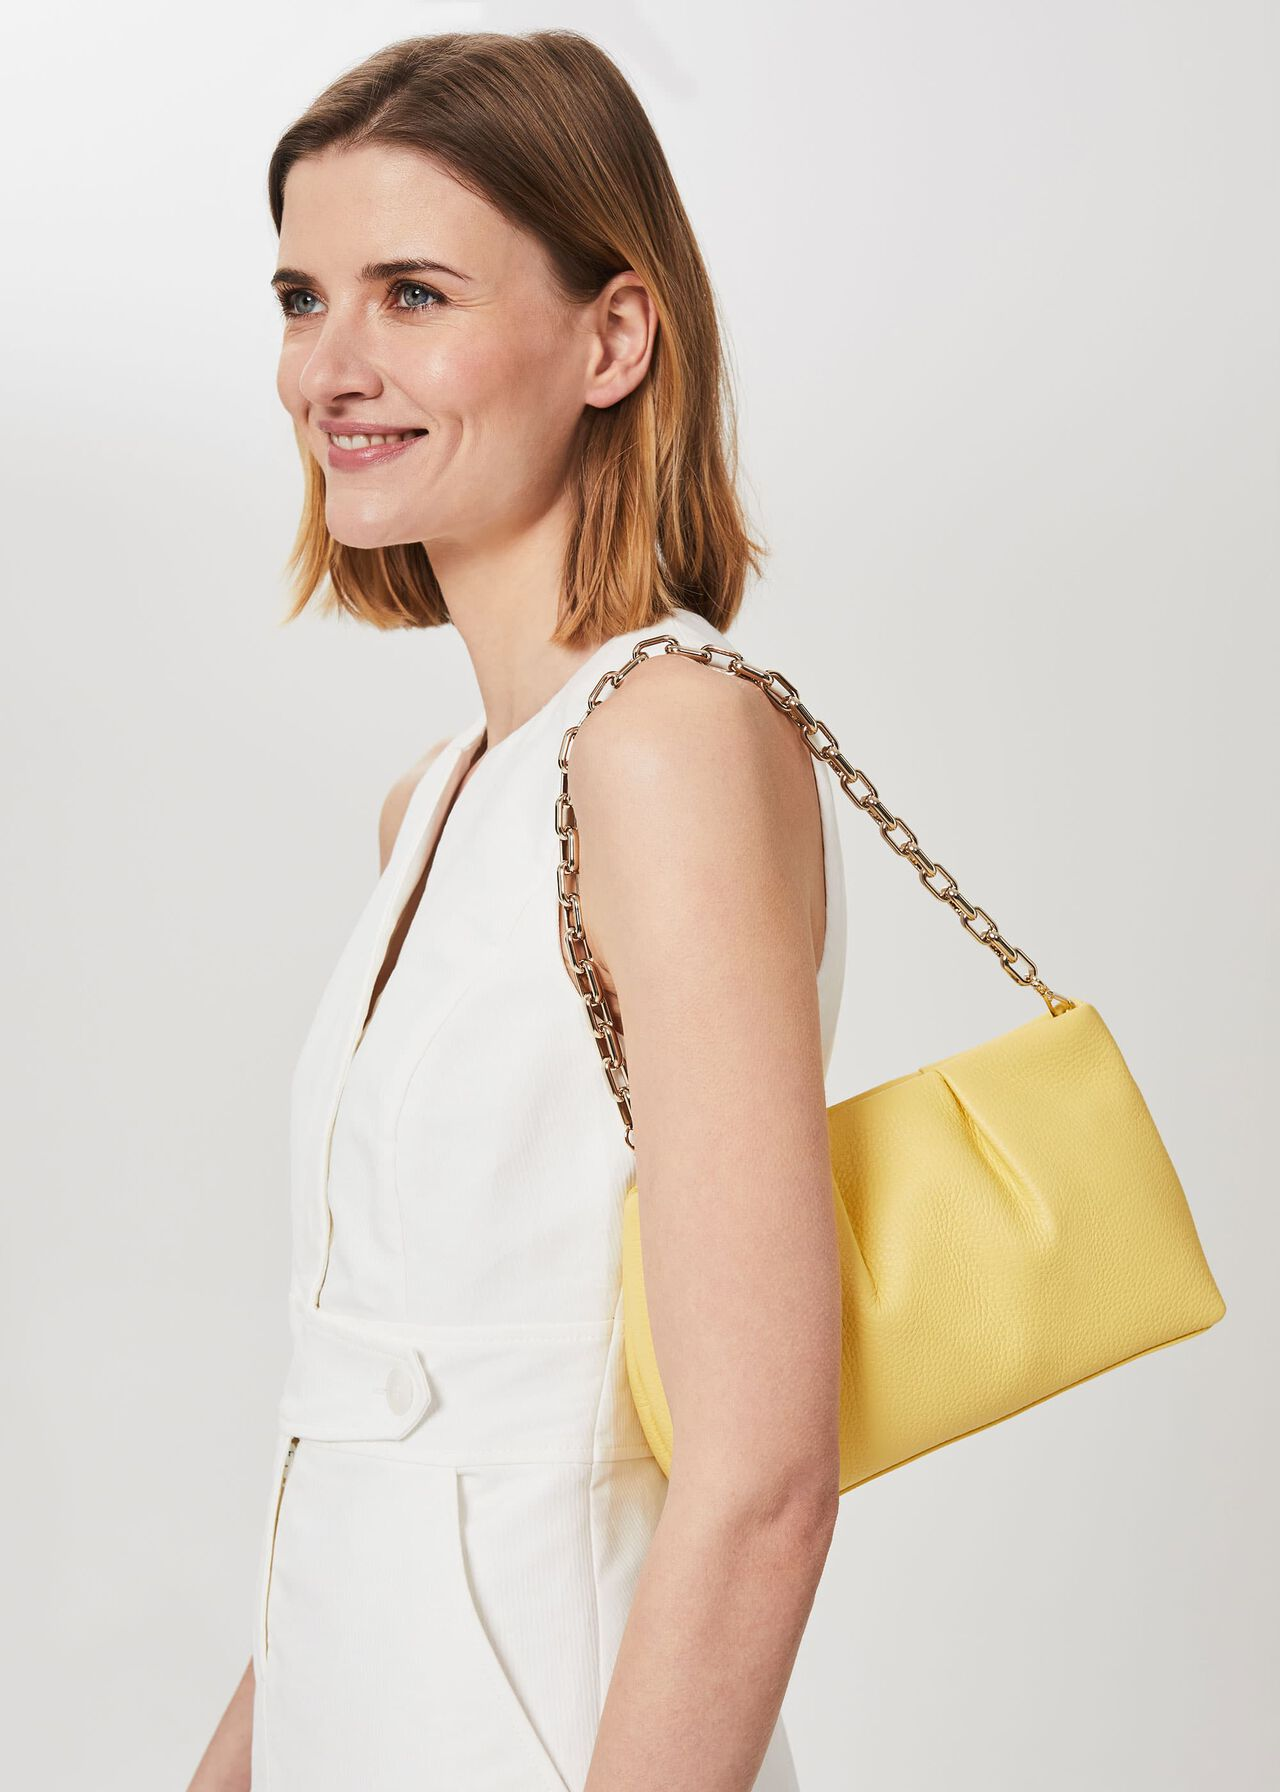 Clifton Leather Clutch Bag, Yellow, hi-res